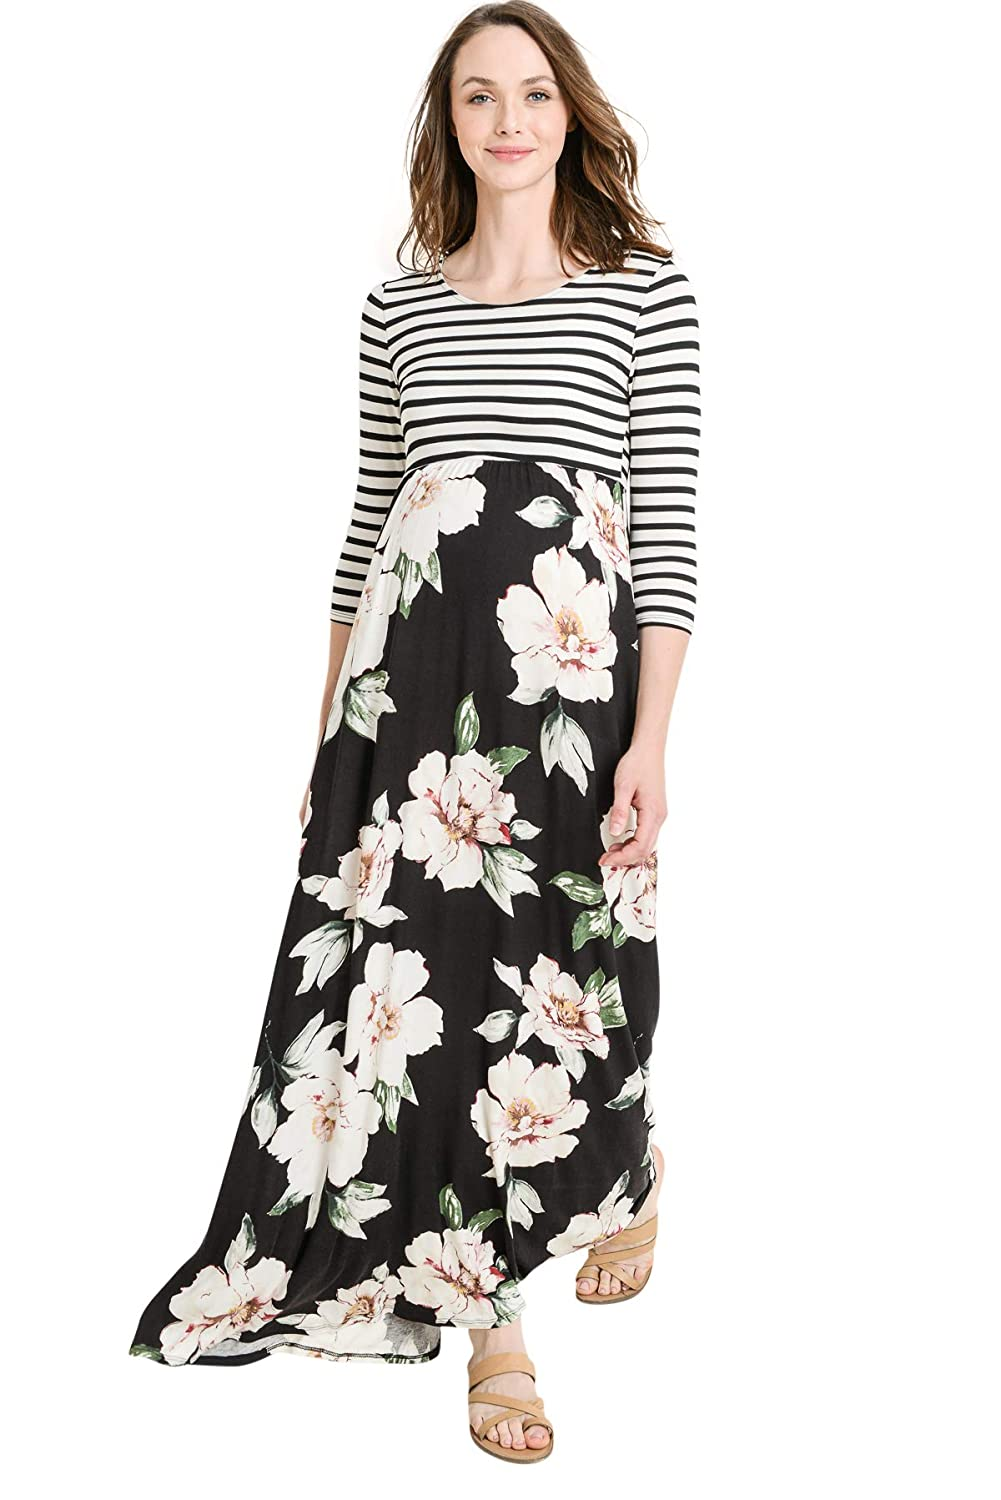 Hello MIZ DRESS レディース B07GC87Y2V  Black/Ivory Flower Medium